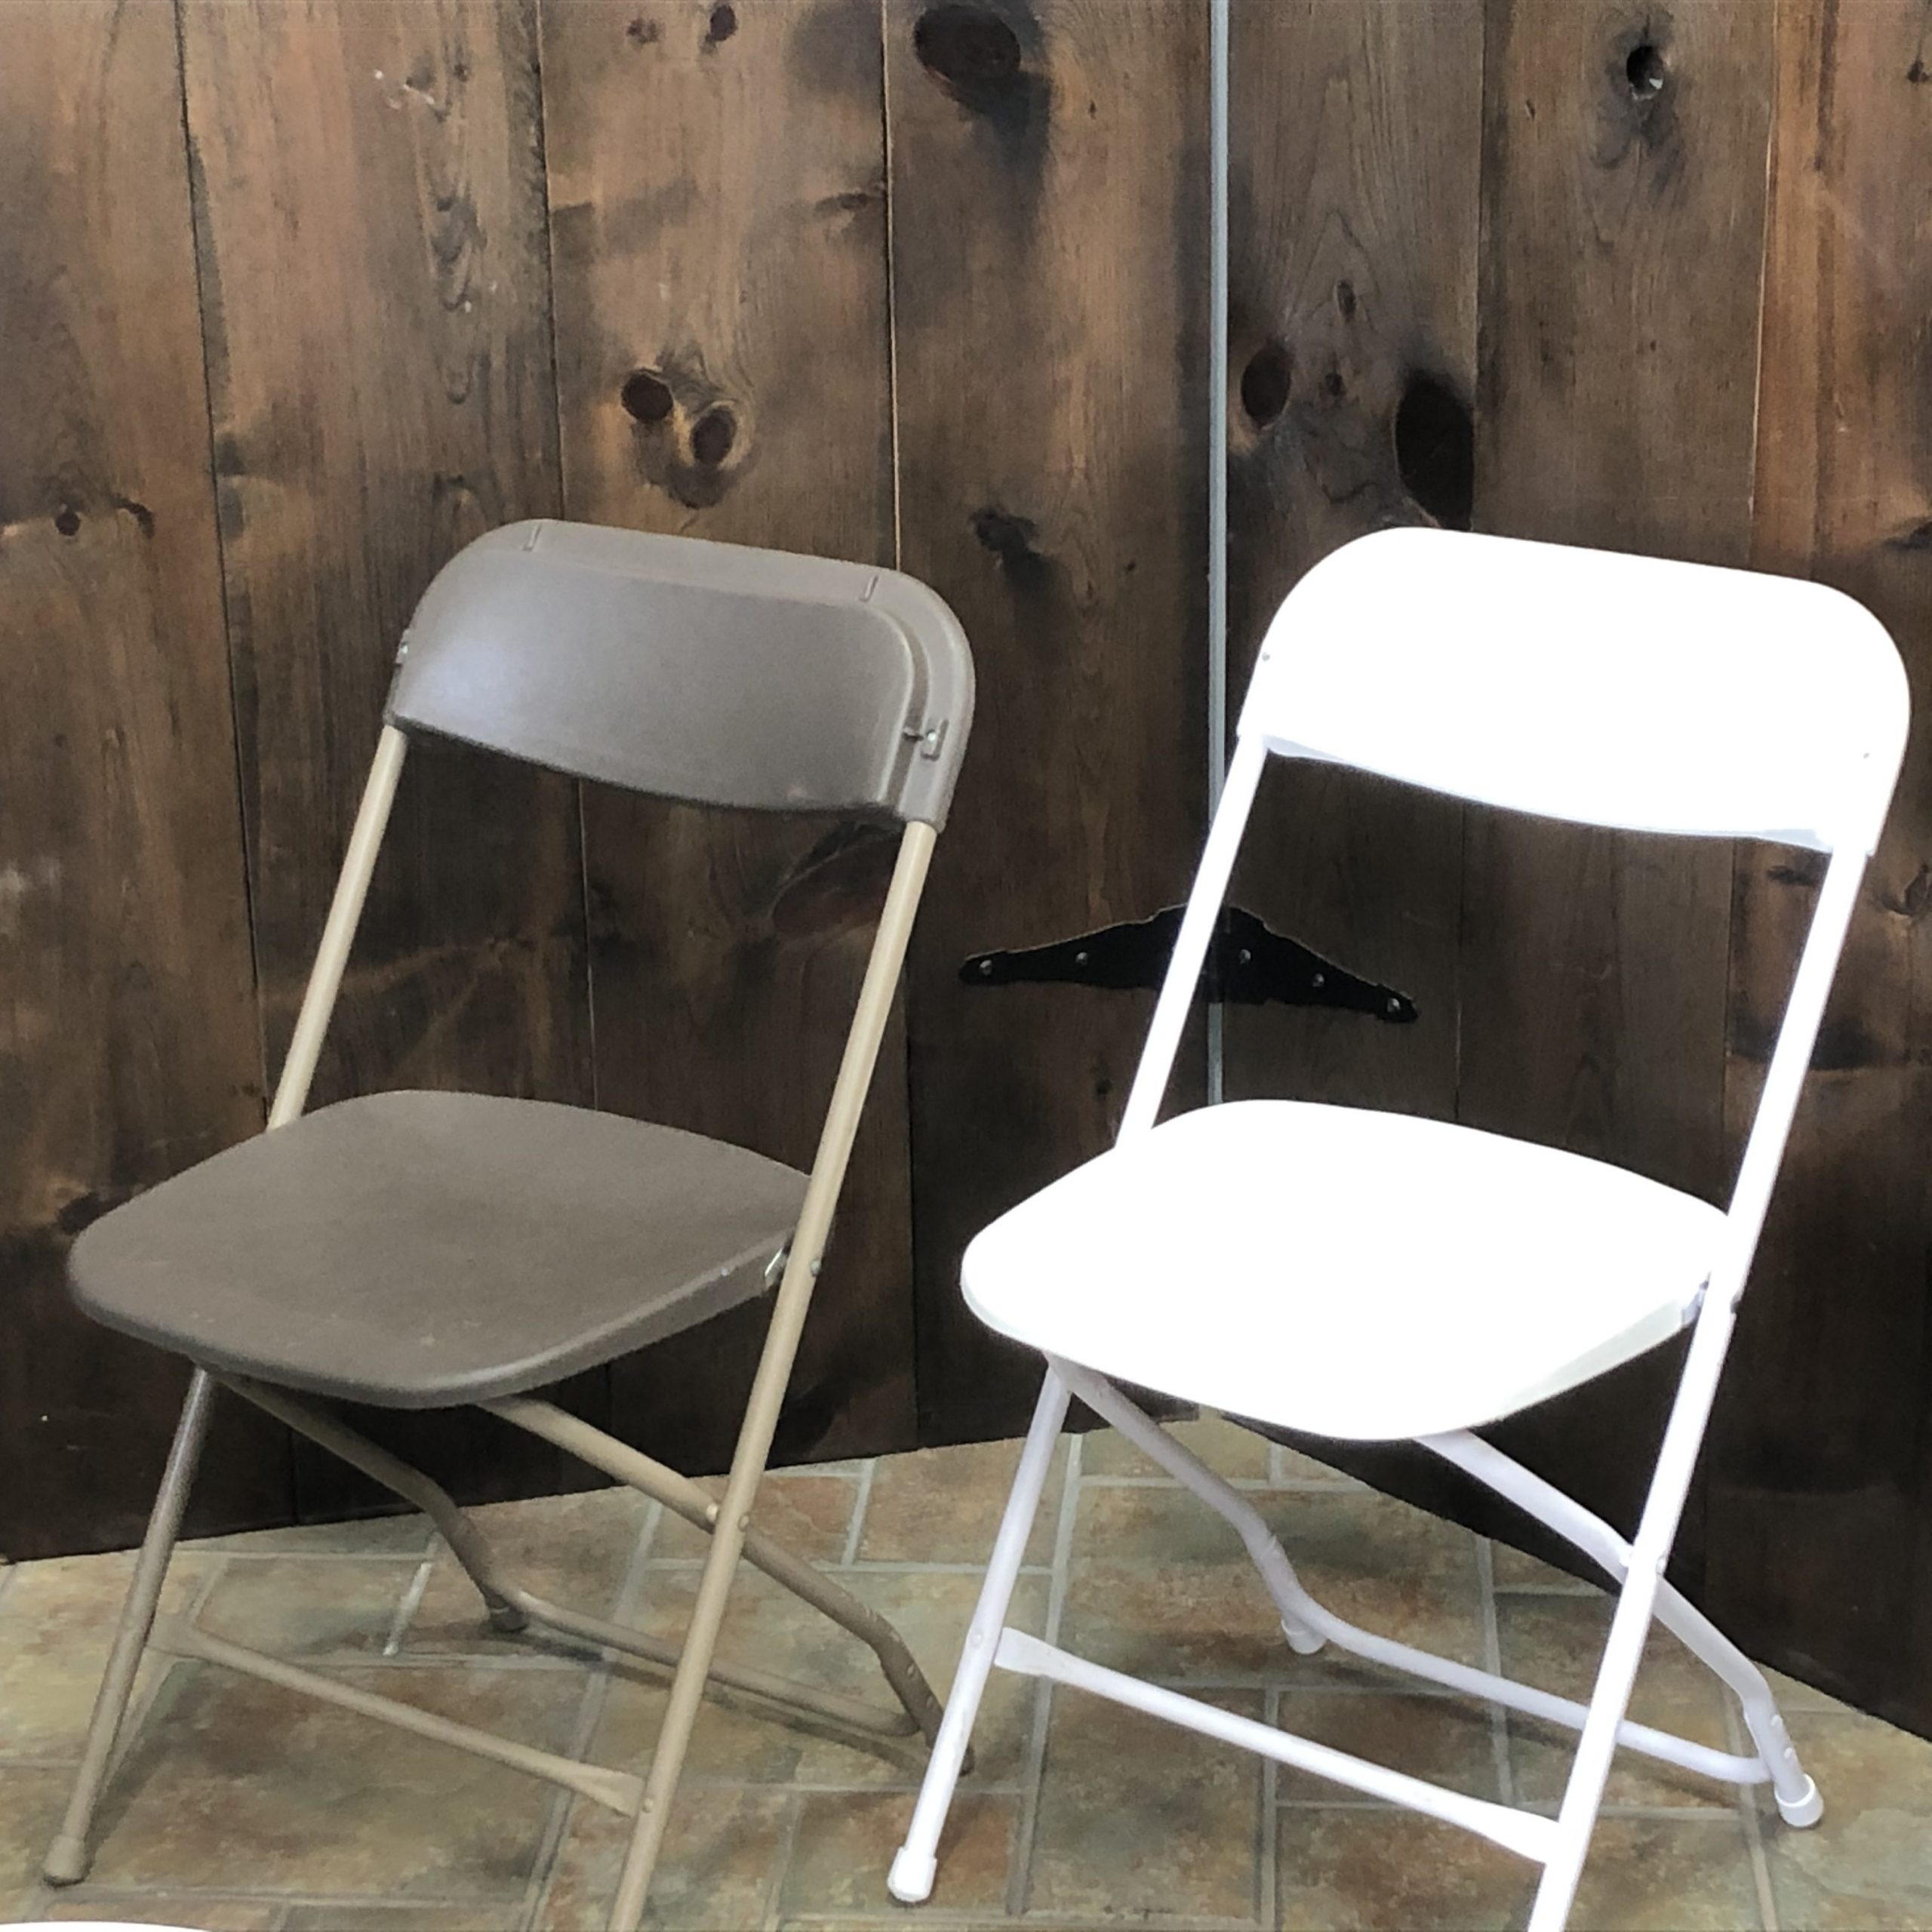 Folding Chairs Image